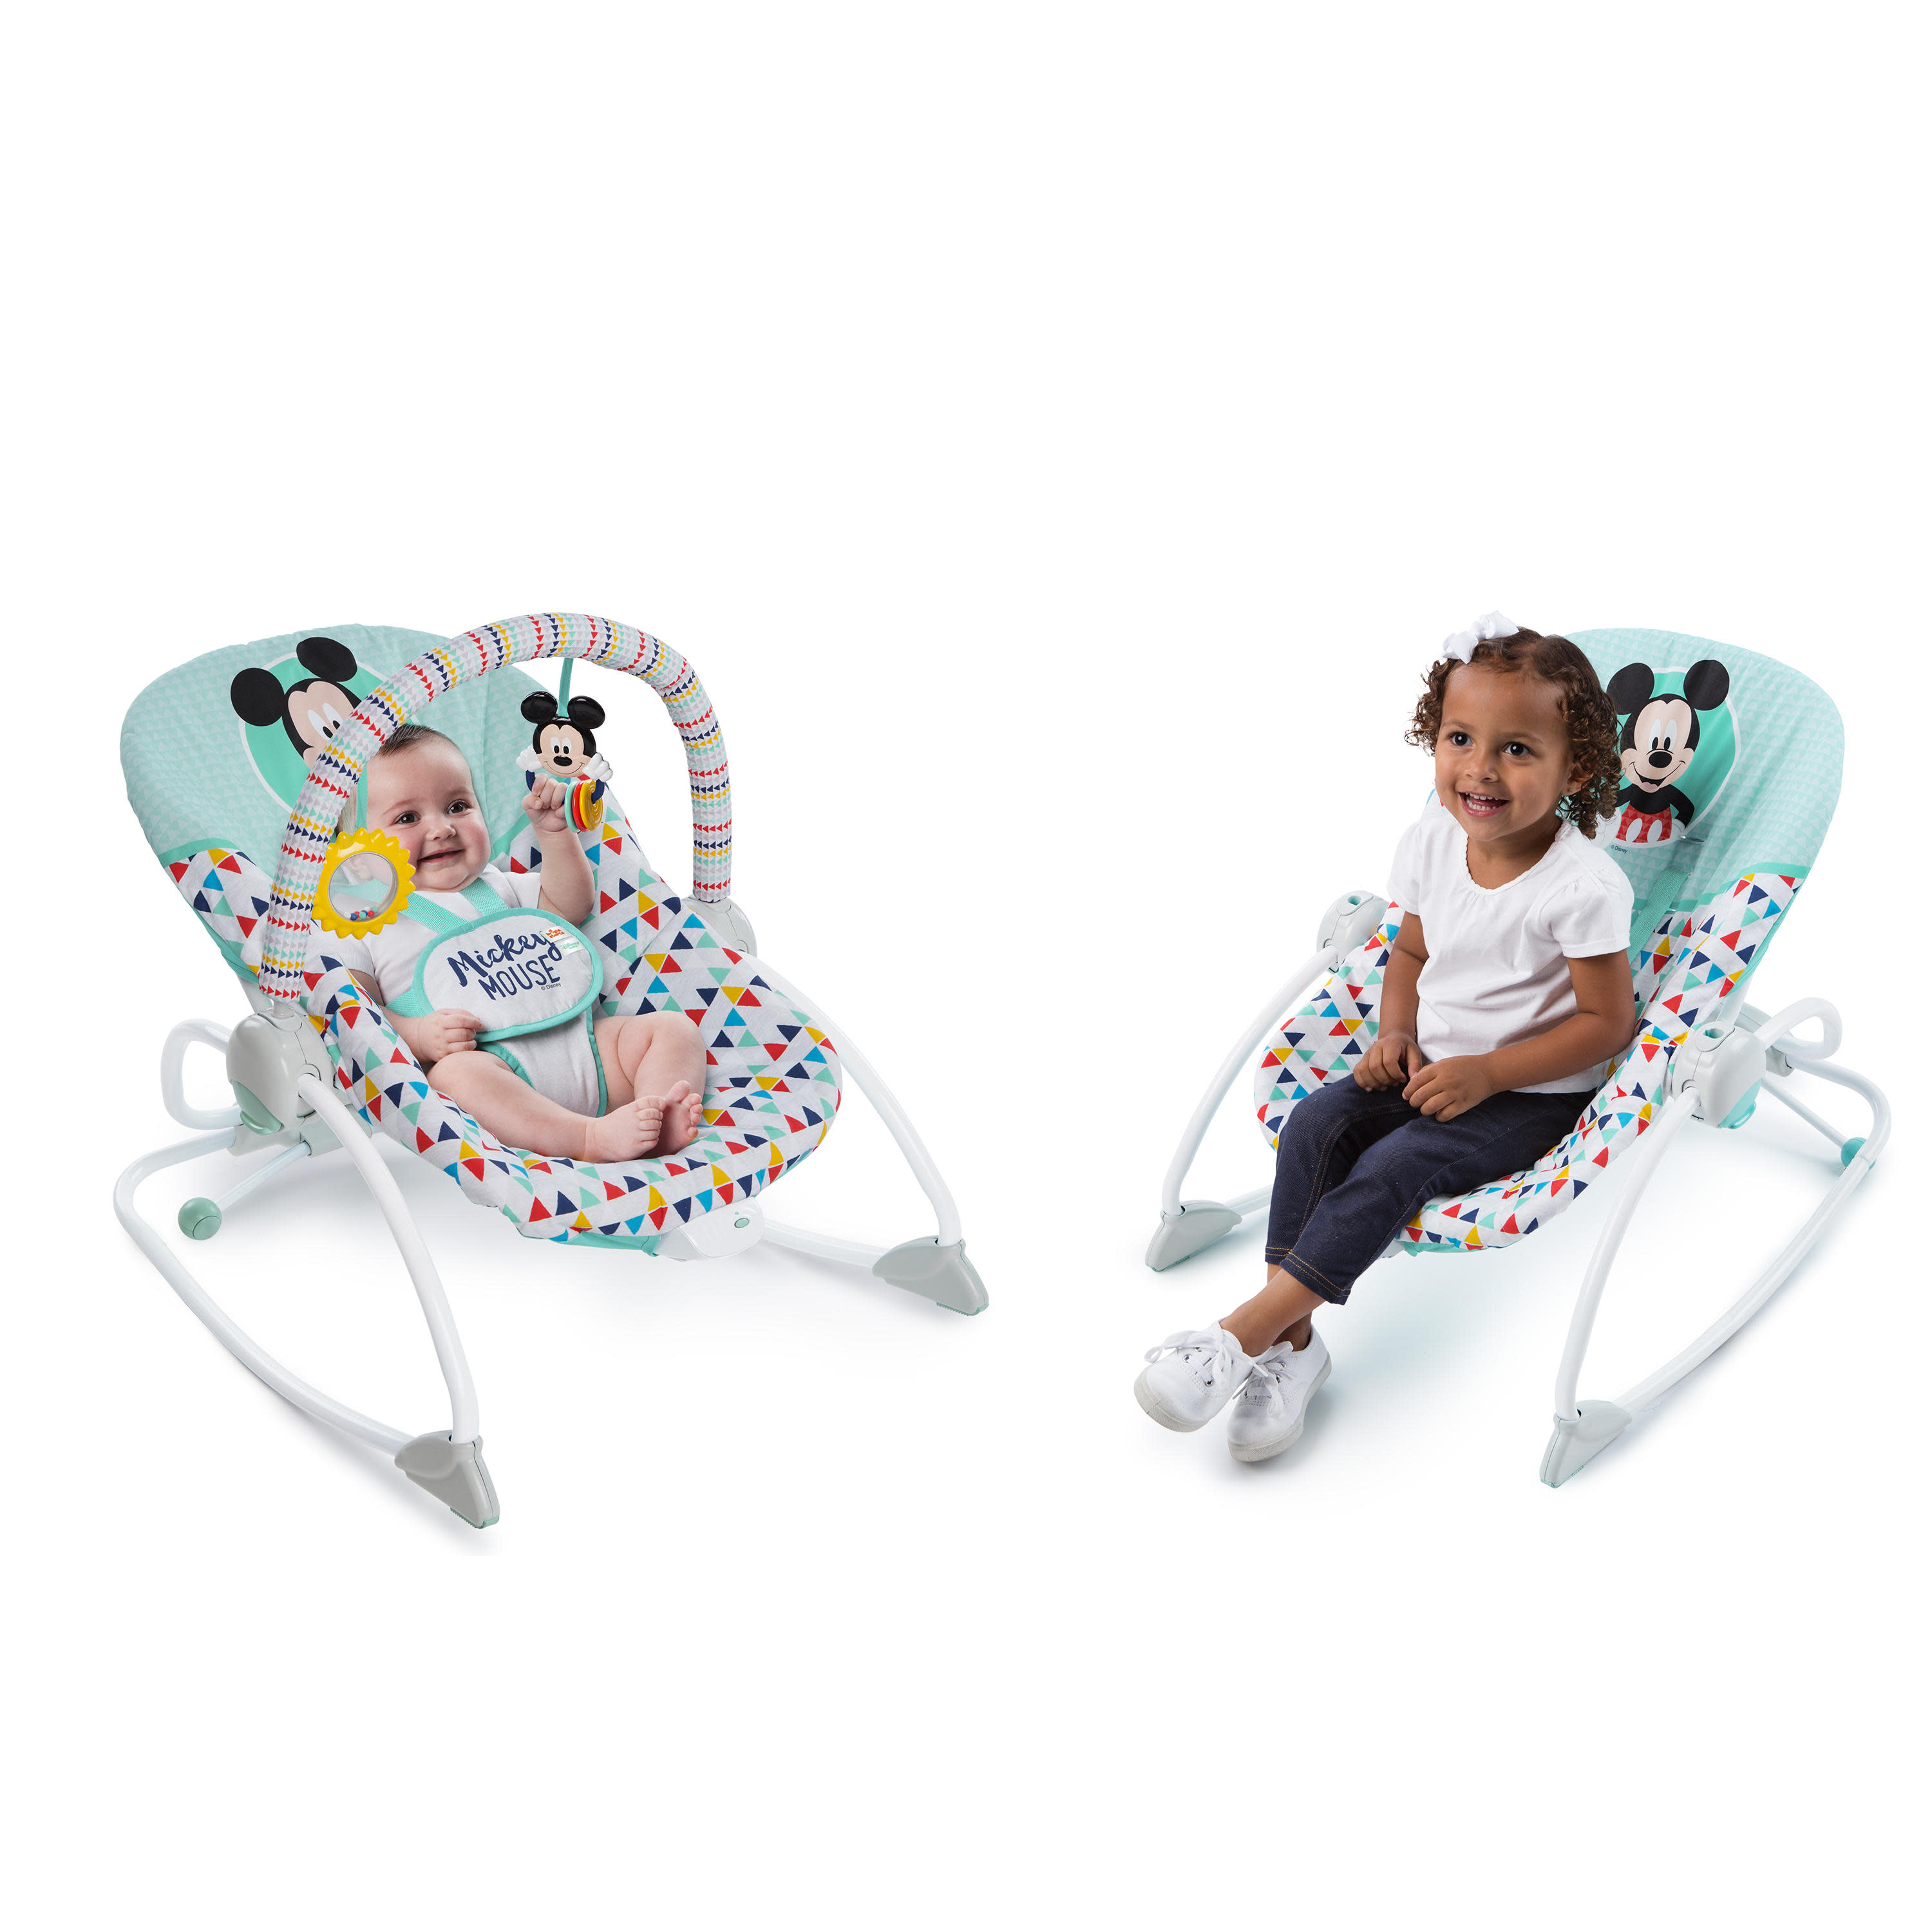 Disney Baby Mickey Mouse Infant to Toddler Rocker Seat - Happy Triangles